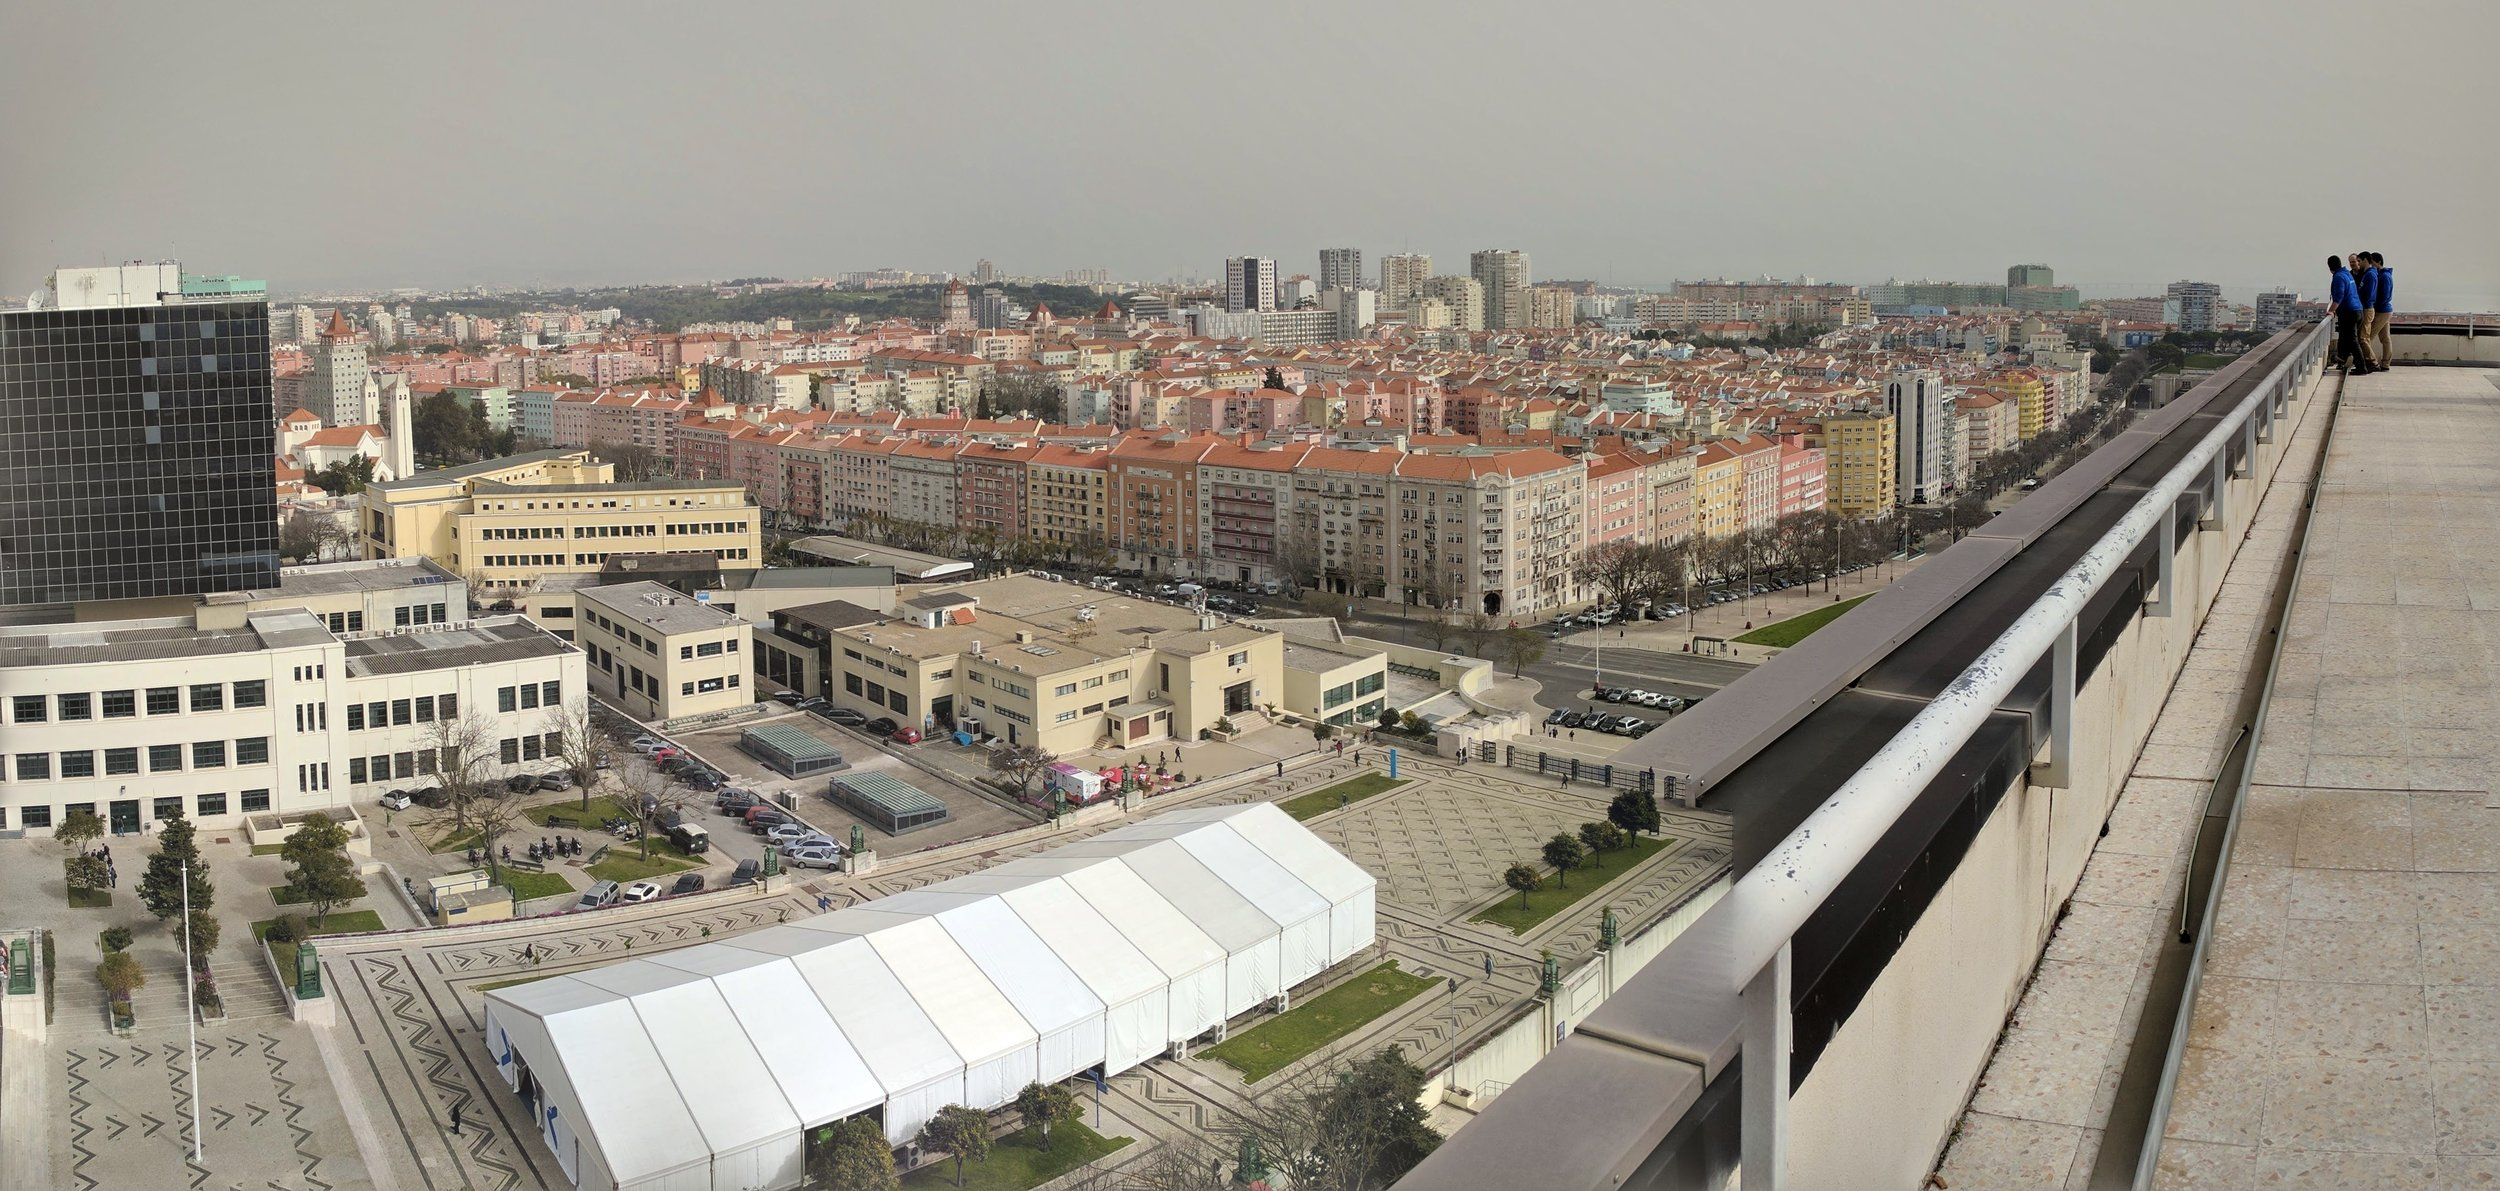 From the top of one of the IST towers, looking down on the SINFO tent